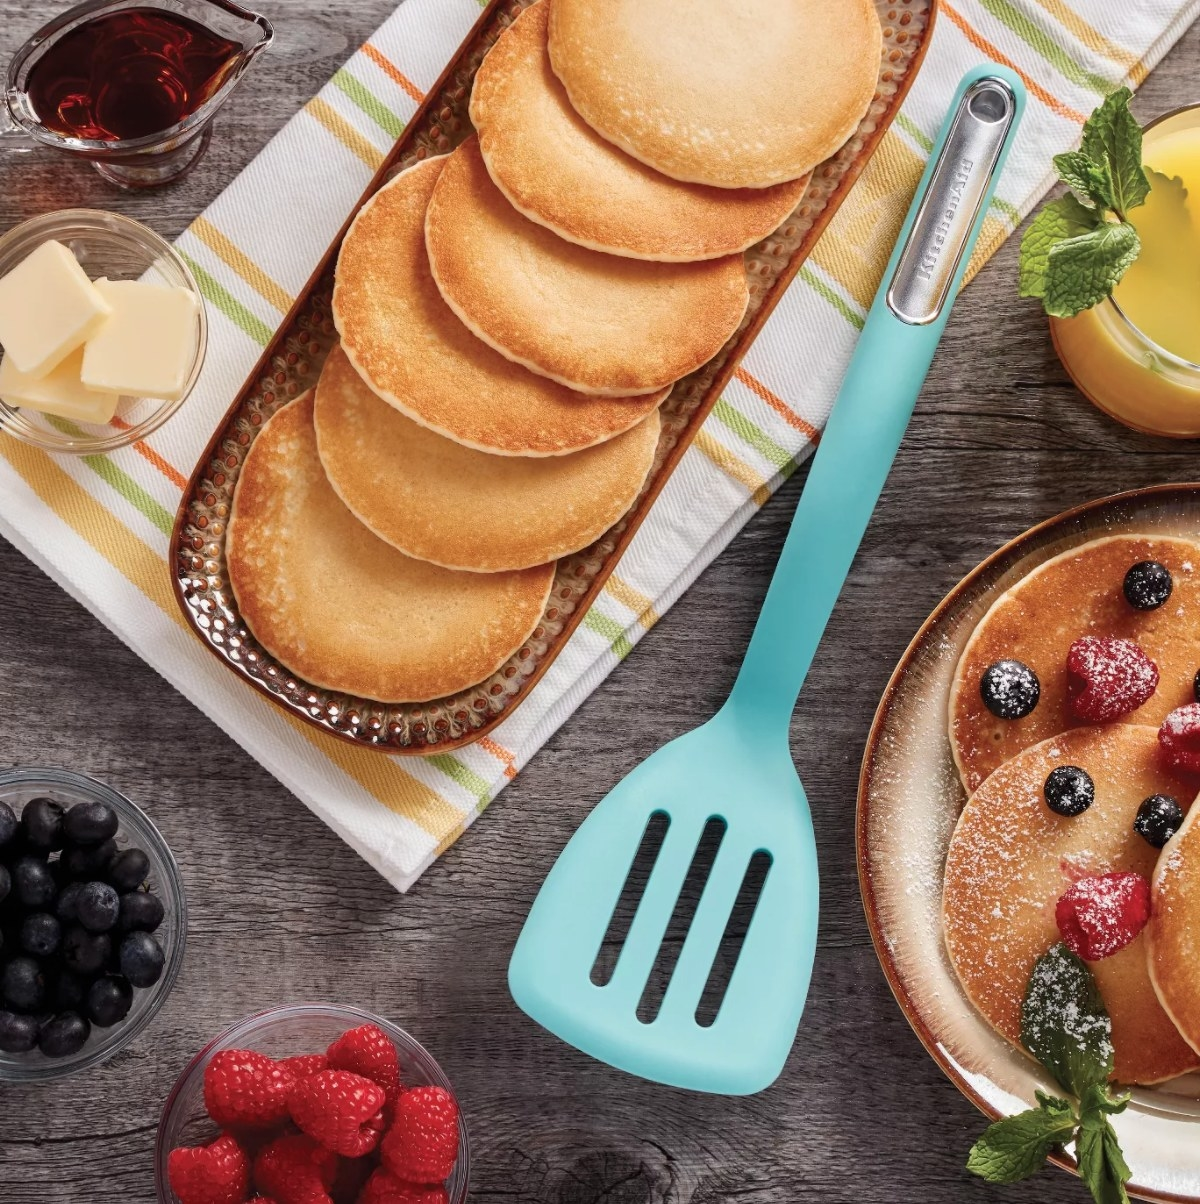 The blue spatula next to a stack of pancakes